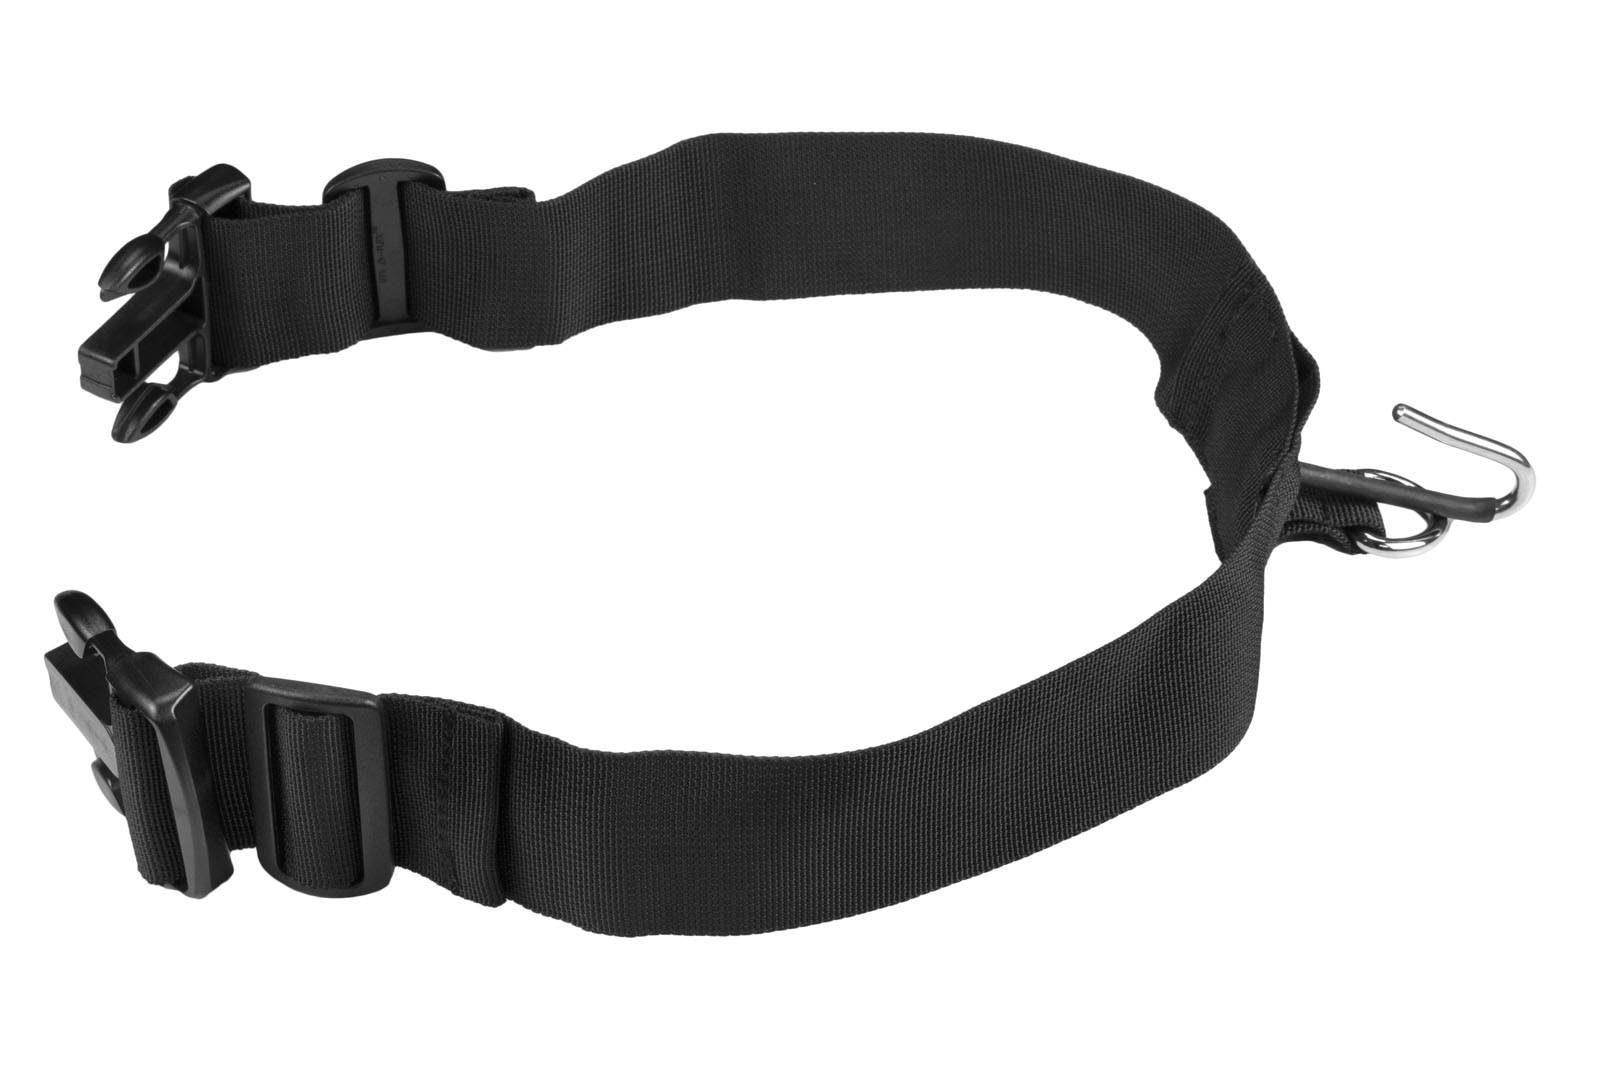 Trekking belt front piece